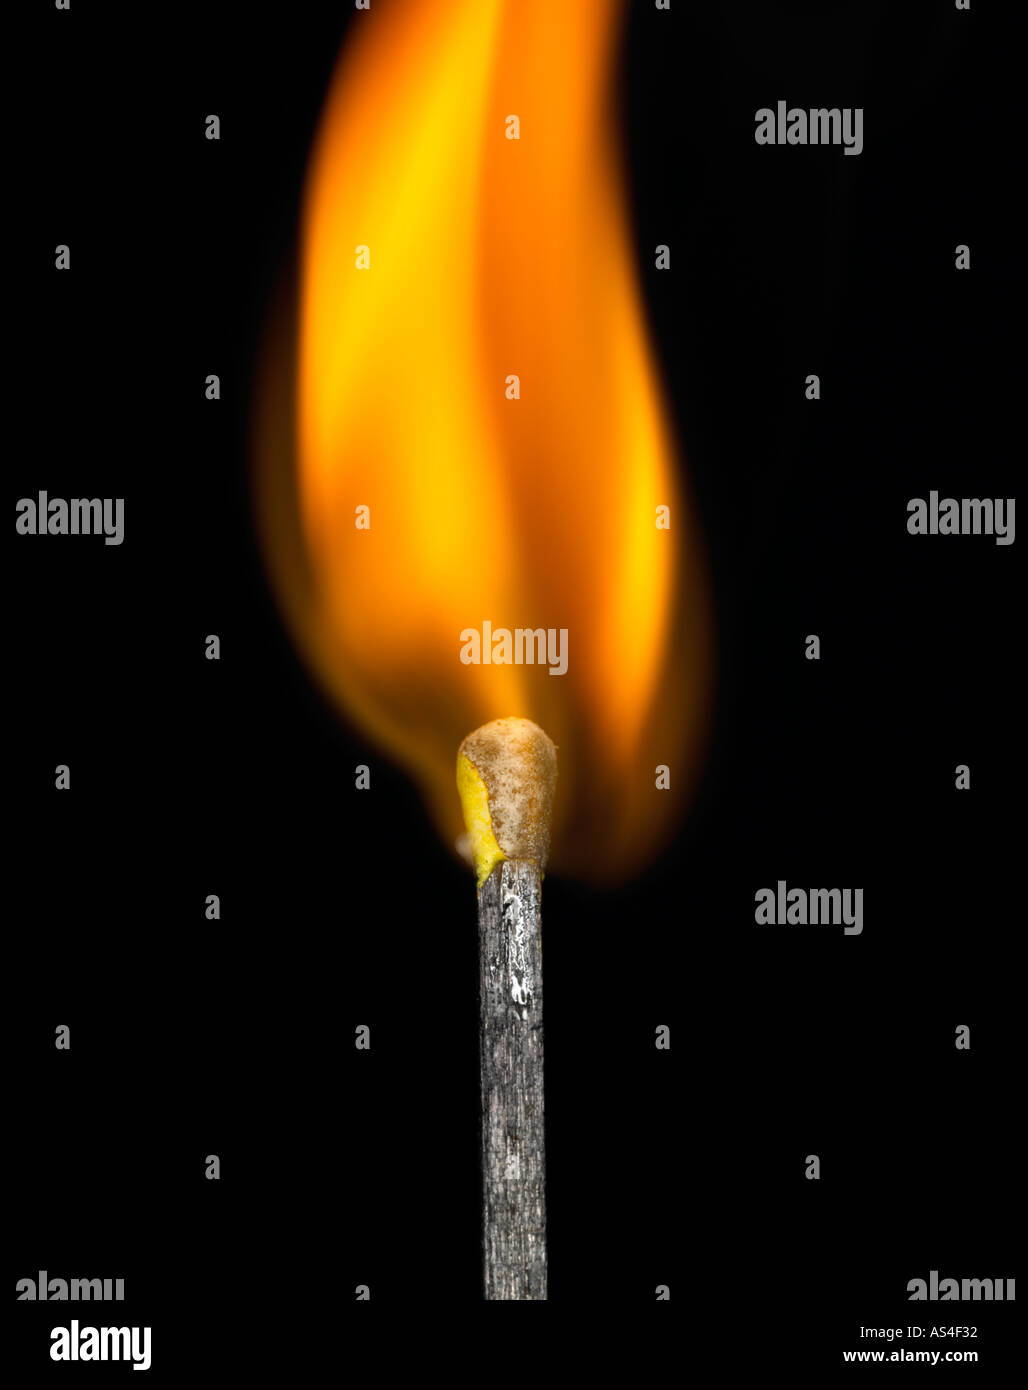 match flame - Stock Image